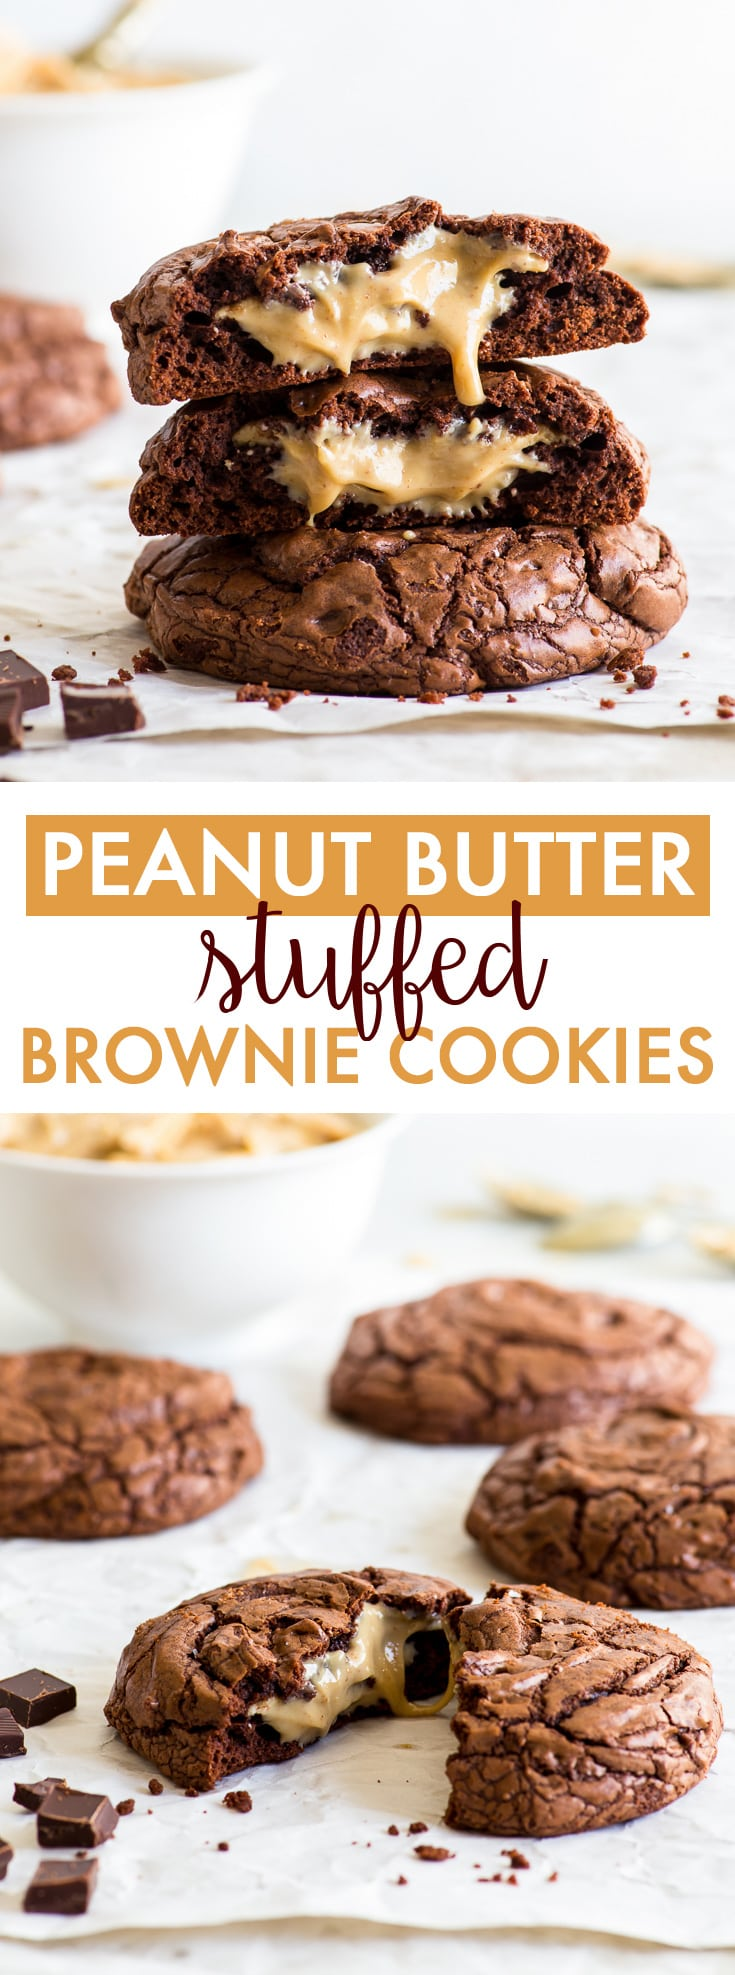 Peanut Butter Stuffed Brownie Cookies (Gluten Free) - These peanut butter stuffed brownie cookies will blow your mind. With a crackly crust, a fudgy chocolatey interior and the most drool-worthy gooey peanut butter centre, these cookies are dangerously delicious and easy to make! Gluten free cookies. Chocolate cookies. Peanut butter cookies. Brookies. Easy cookie recipes. Chocolate dessert recipes. Peanut butter dessert. #brownies #cookies #chocolate #peanutbutter #glutenfree #dessert #recipe